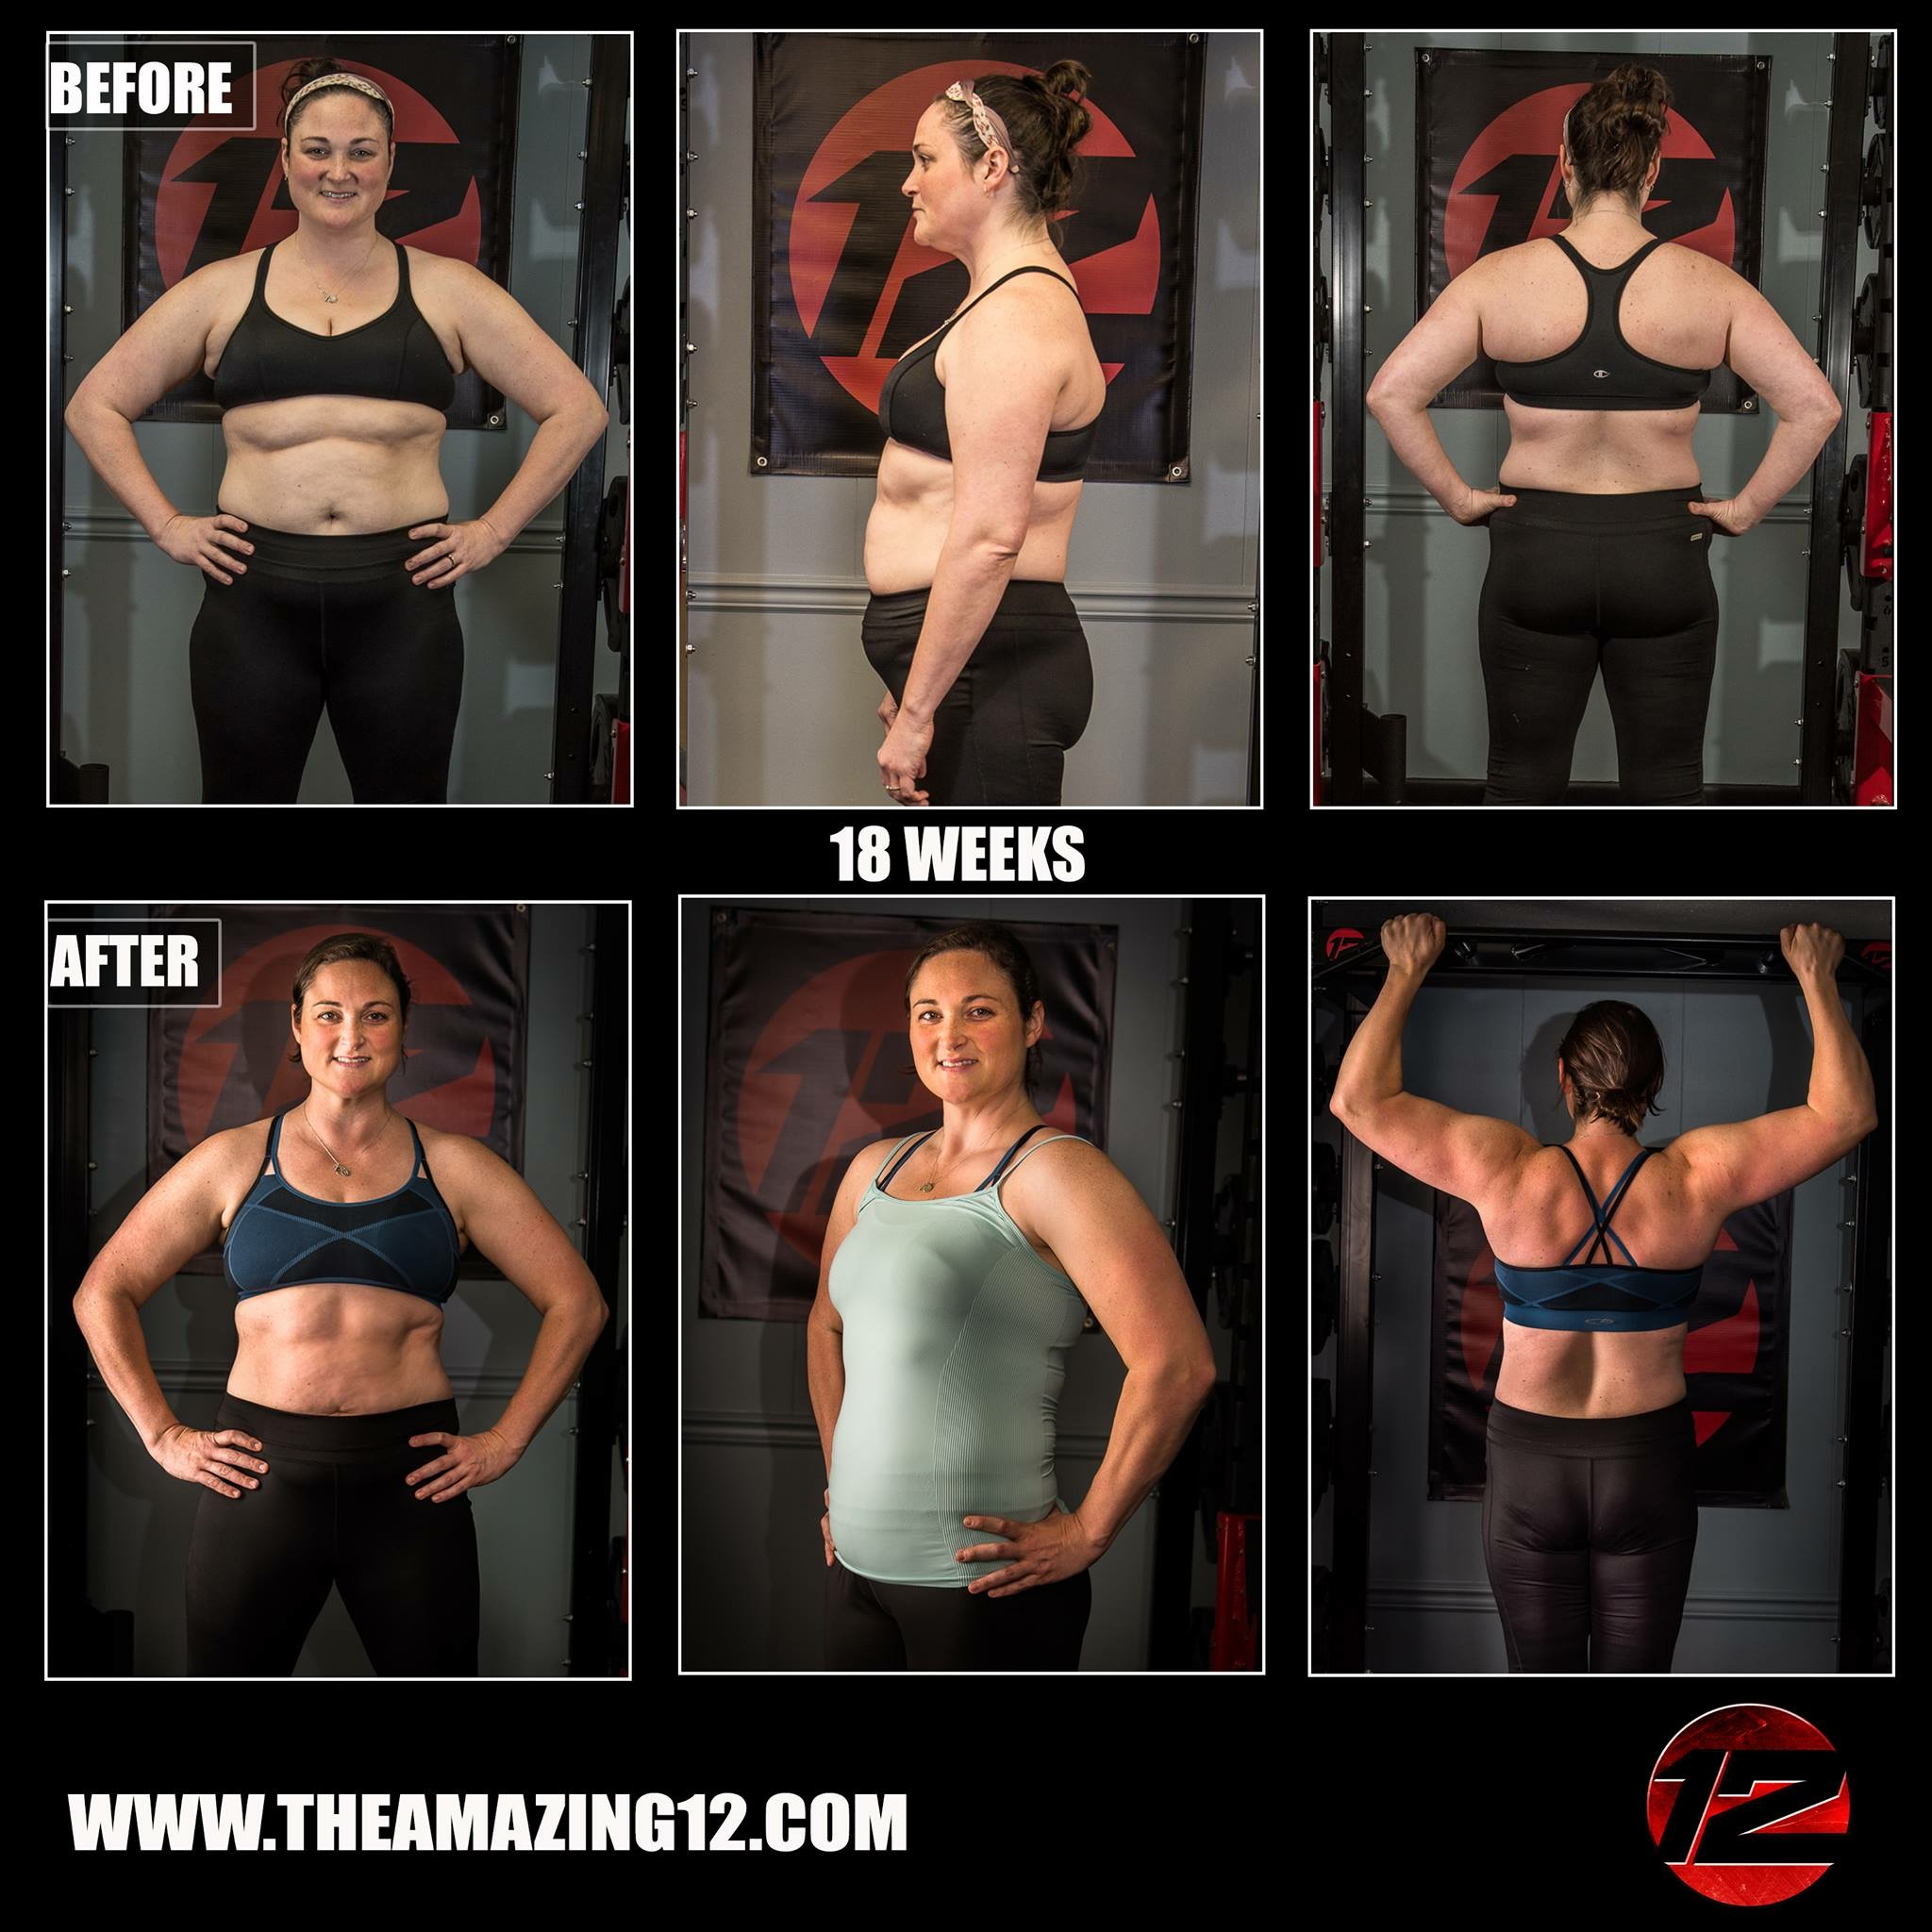 """""""I cannot say enough how much of a blessing the Amazing 12 has been for me. Several things happened over the last few years that left me with a great loss of core stability as well as low back pain during work and while taking care of my children.   I never thought I could gain so much strength so quickly. The health gains from this program are remarkable! I've heard so many people say """"I can't lift weights like that"""" or """"I don't know anything about fitness"""". This program is for EVERYONE! You lift what is comfortable for you and make extraordinary gains in strength while losing fat. I feel so blessed to have had the opportunity to be part of the Amazing 12! I am able to work more effectively and take care of my children much more easily with the amazing gains I've made. THANK YOU SO MUCH AMANDA!!!!!!!!!!!"""""""